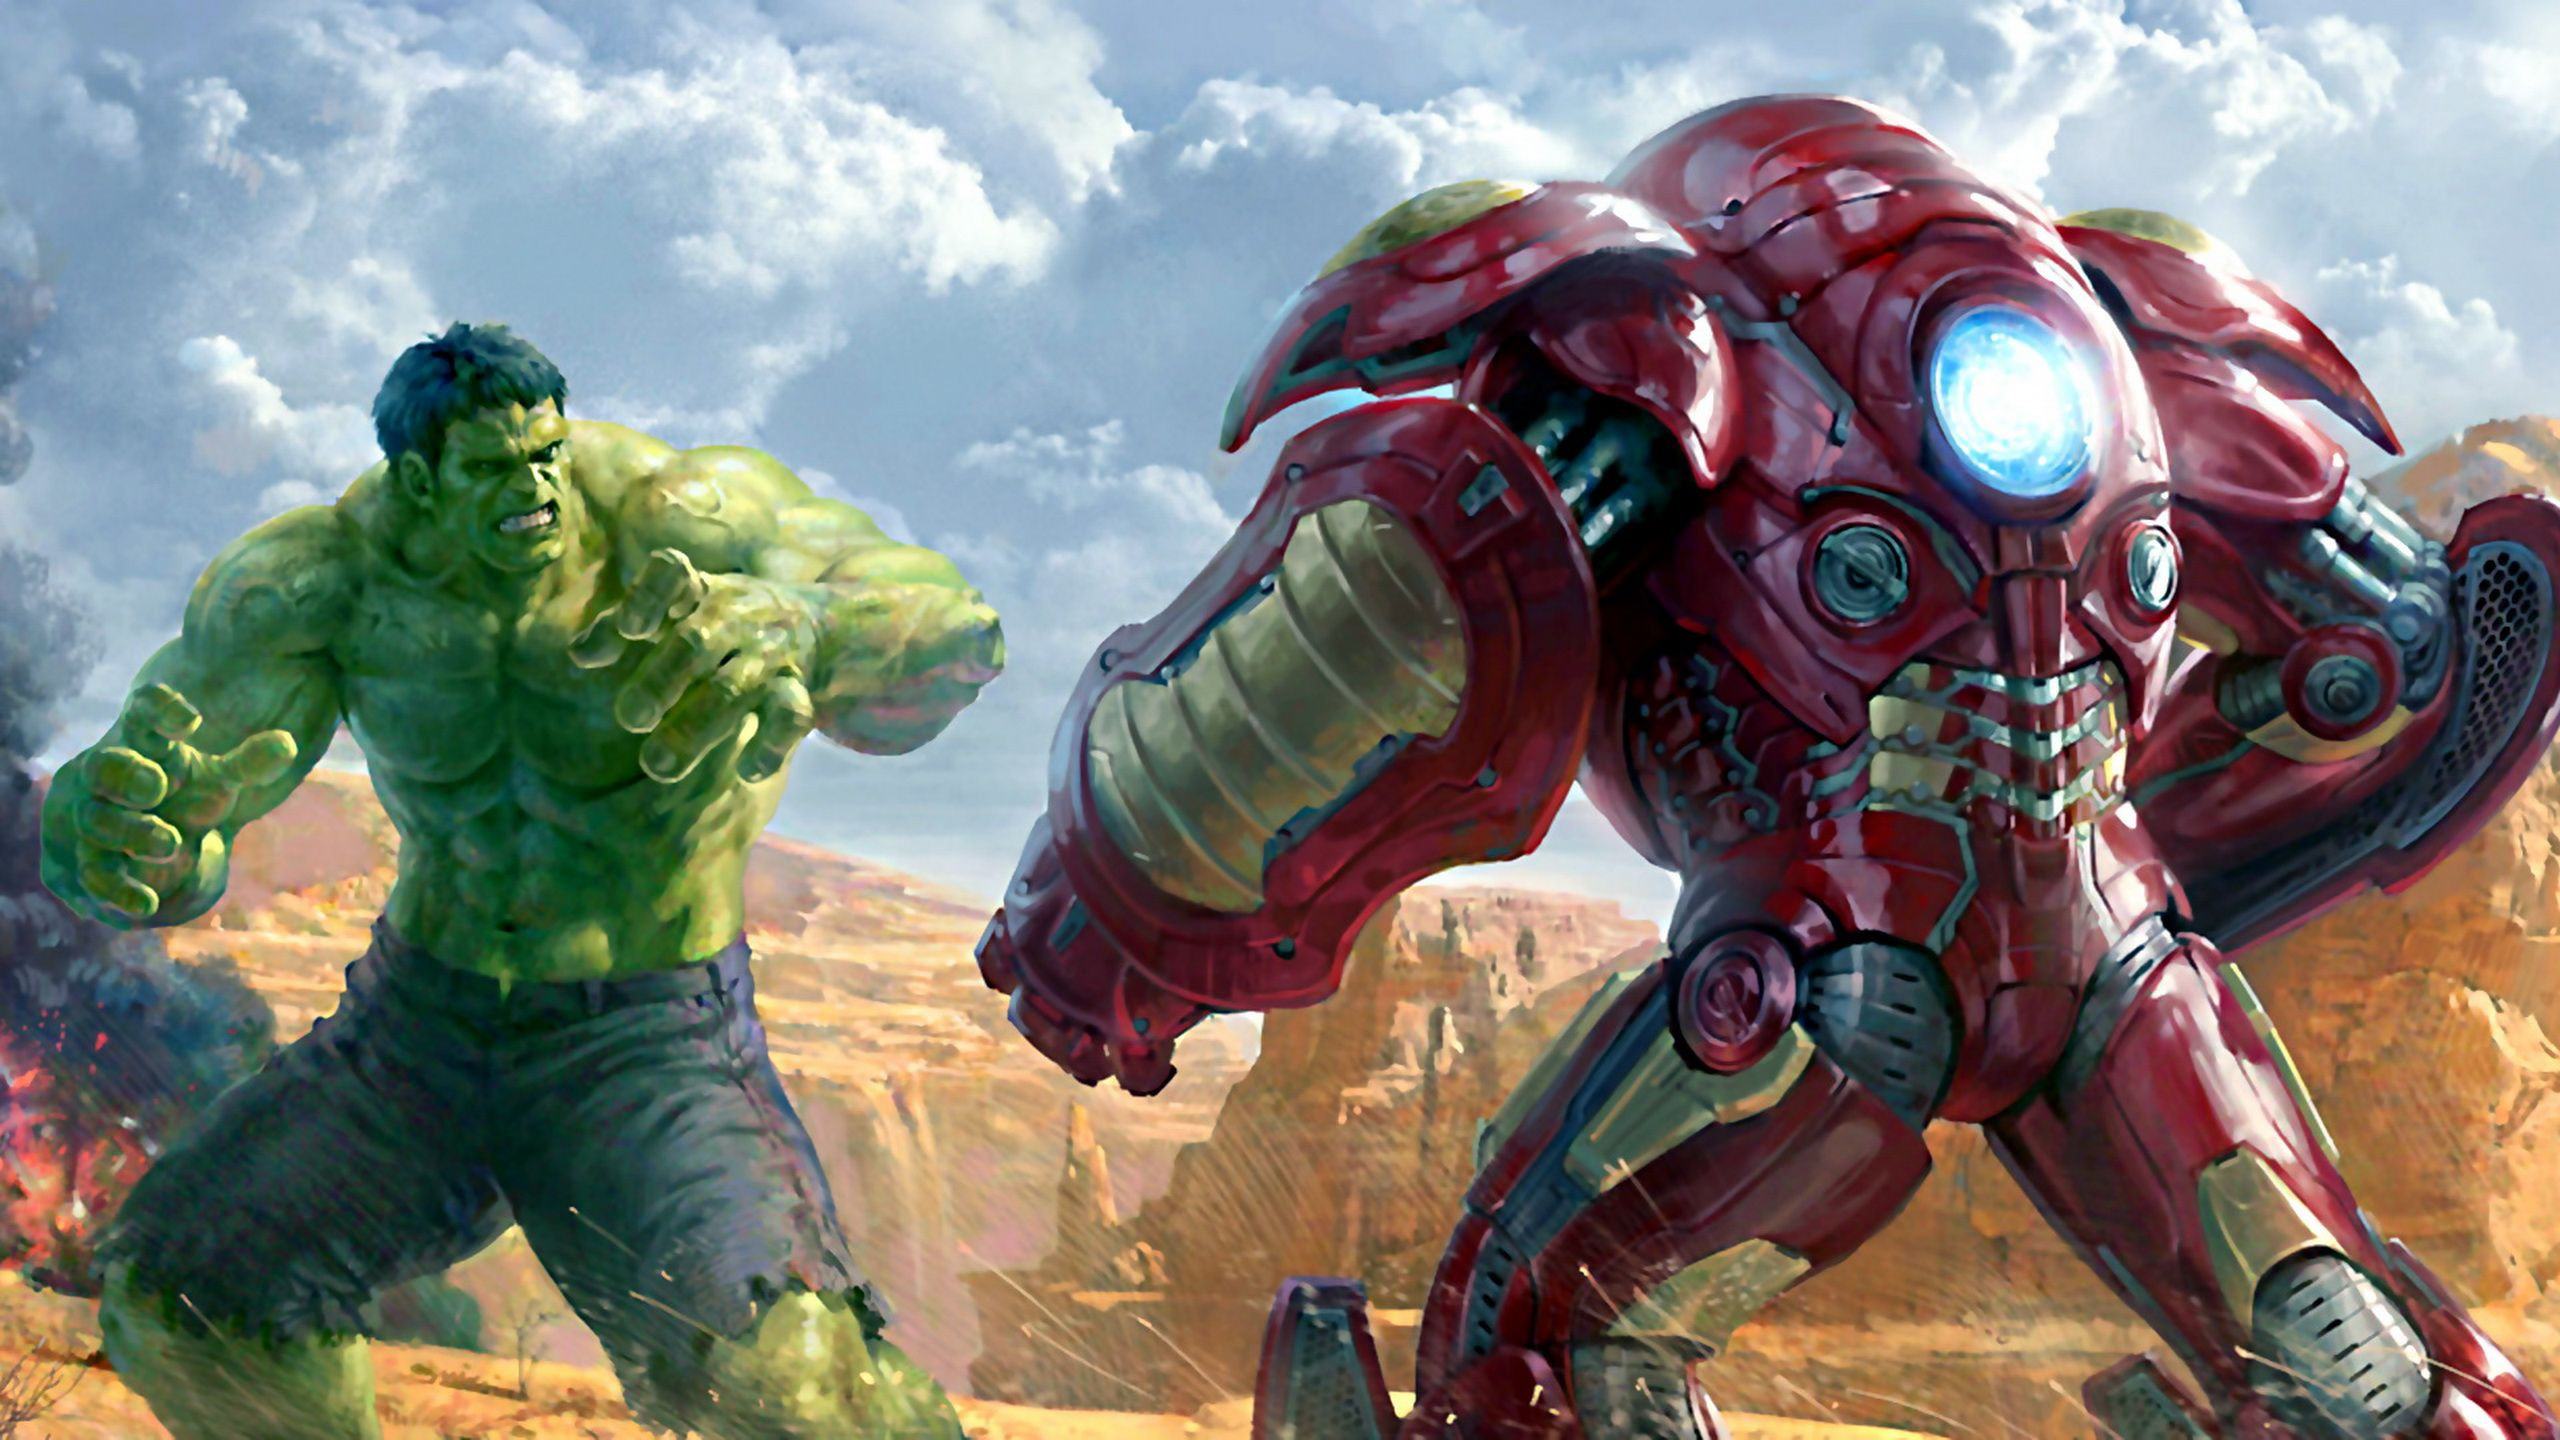 Hulk Vs Iron Man Wallpaper